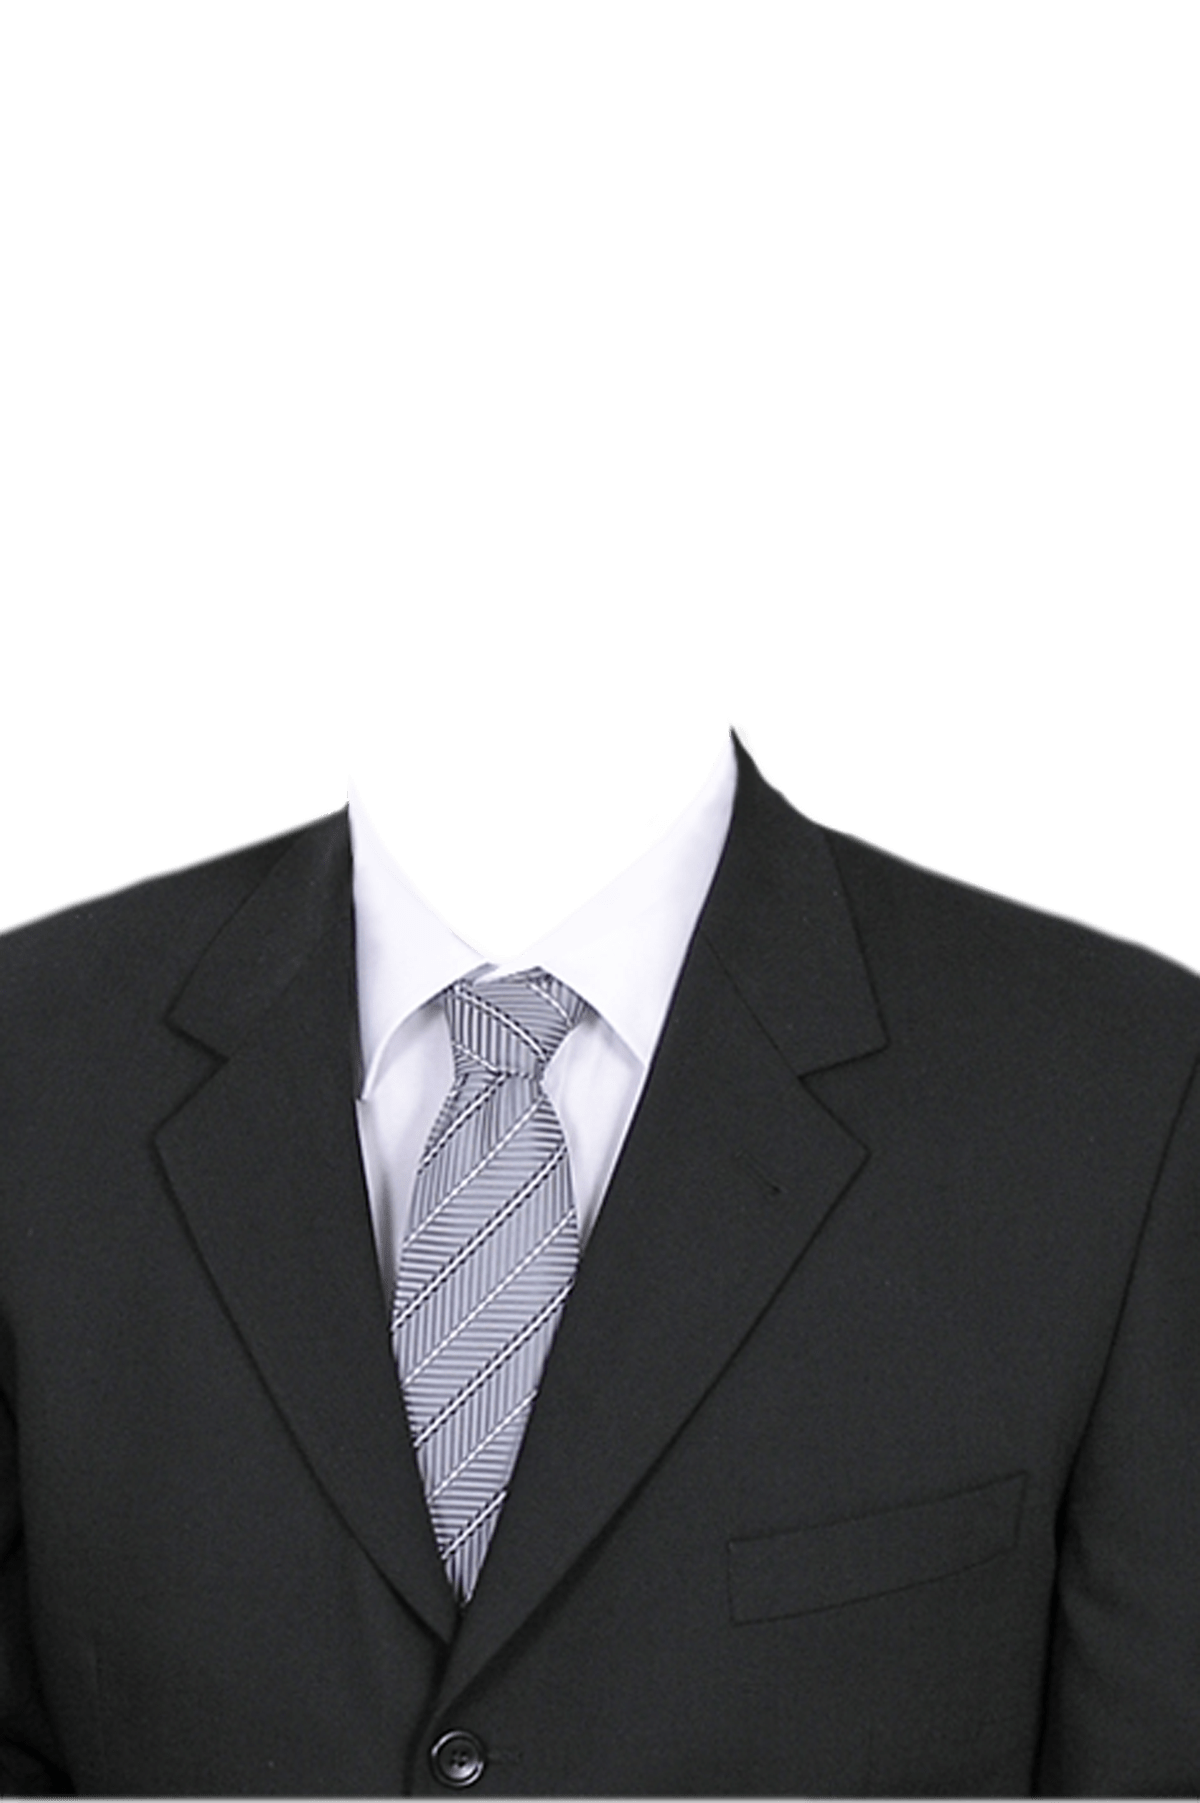 Suit template png. Man in a transparent